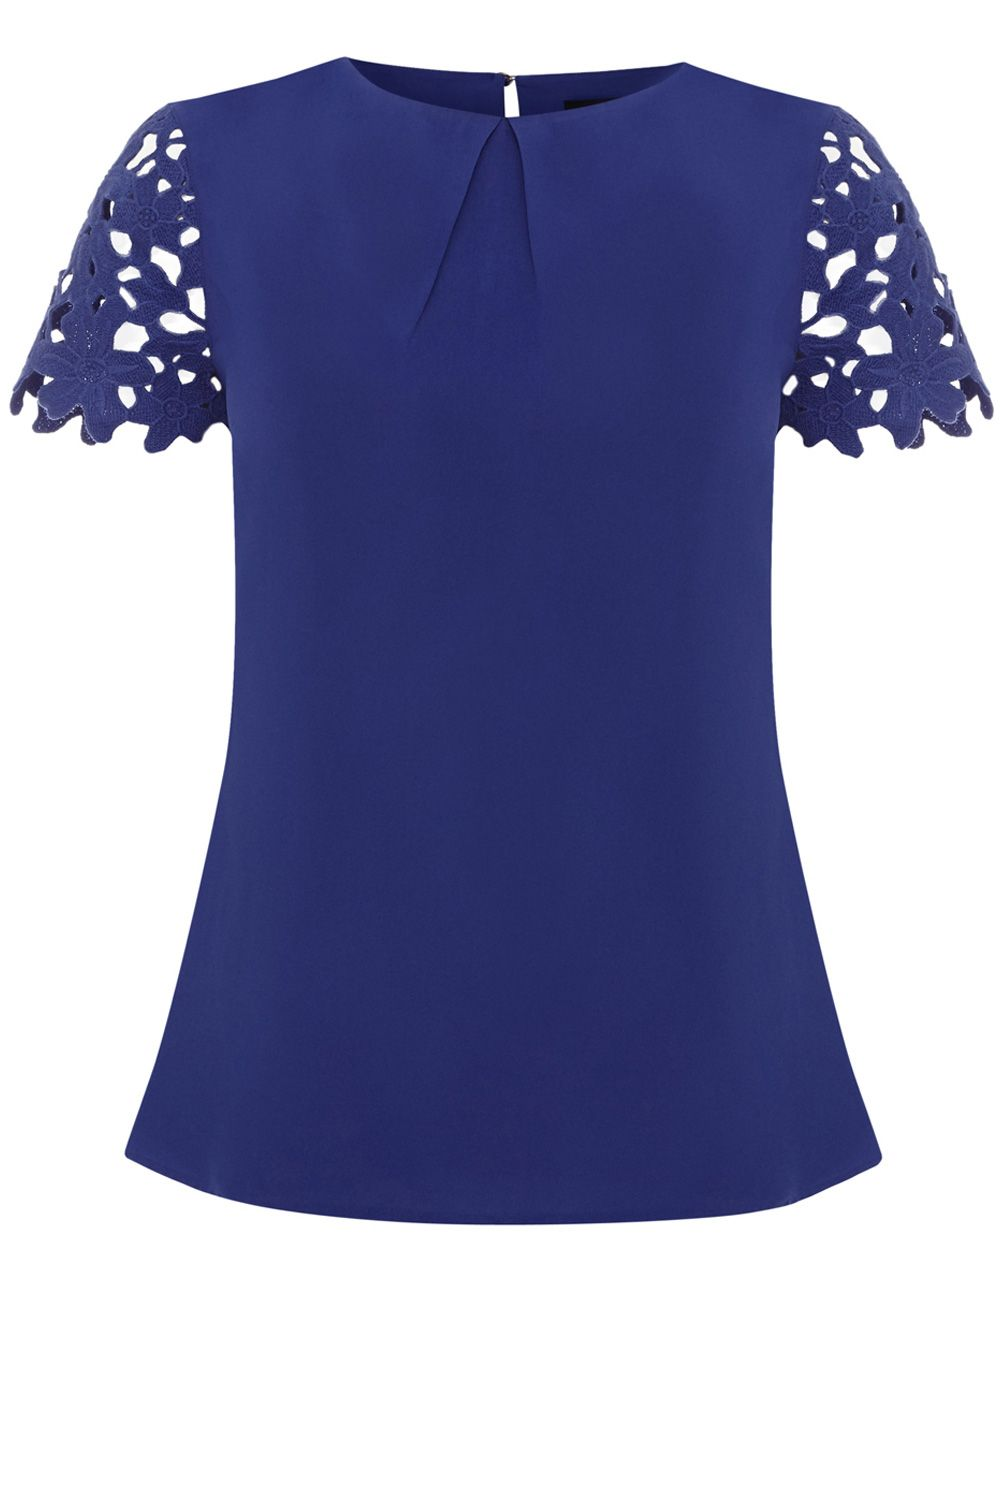 Cutwork flower t-shirt